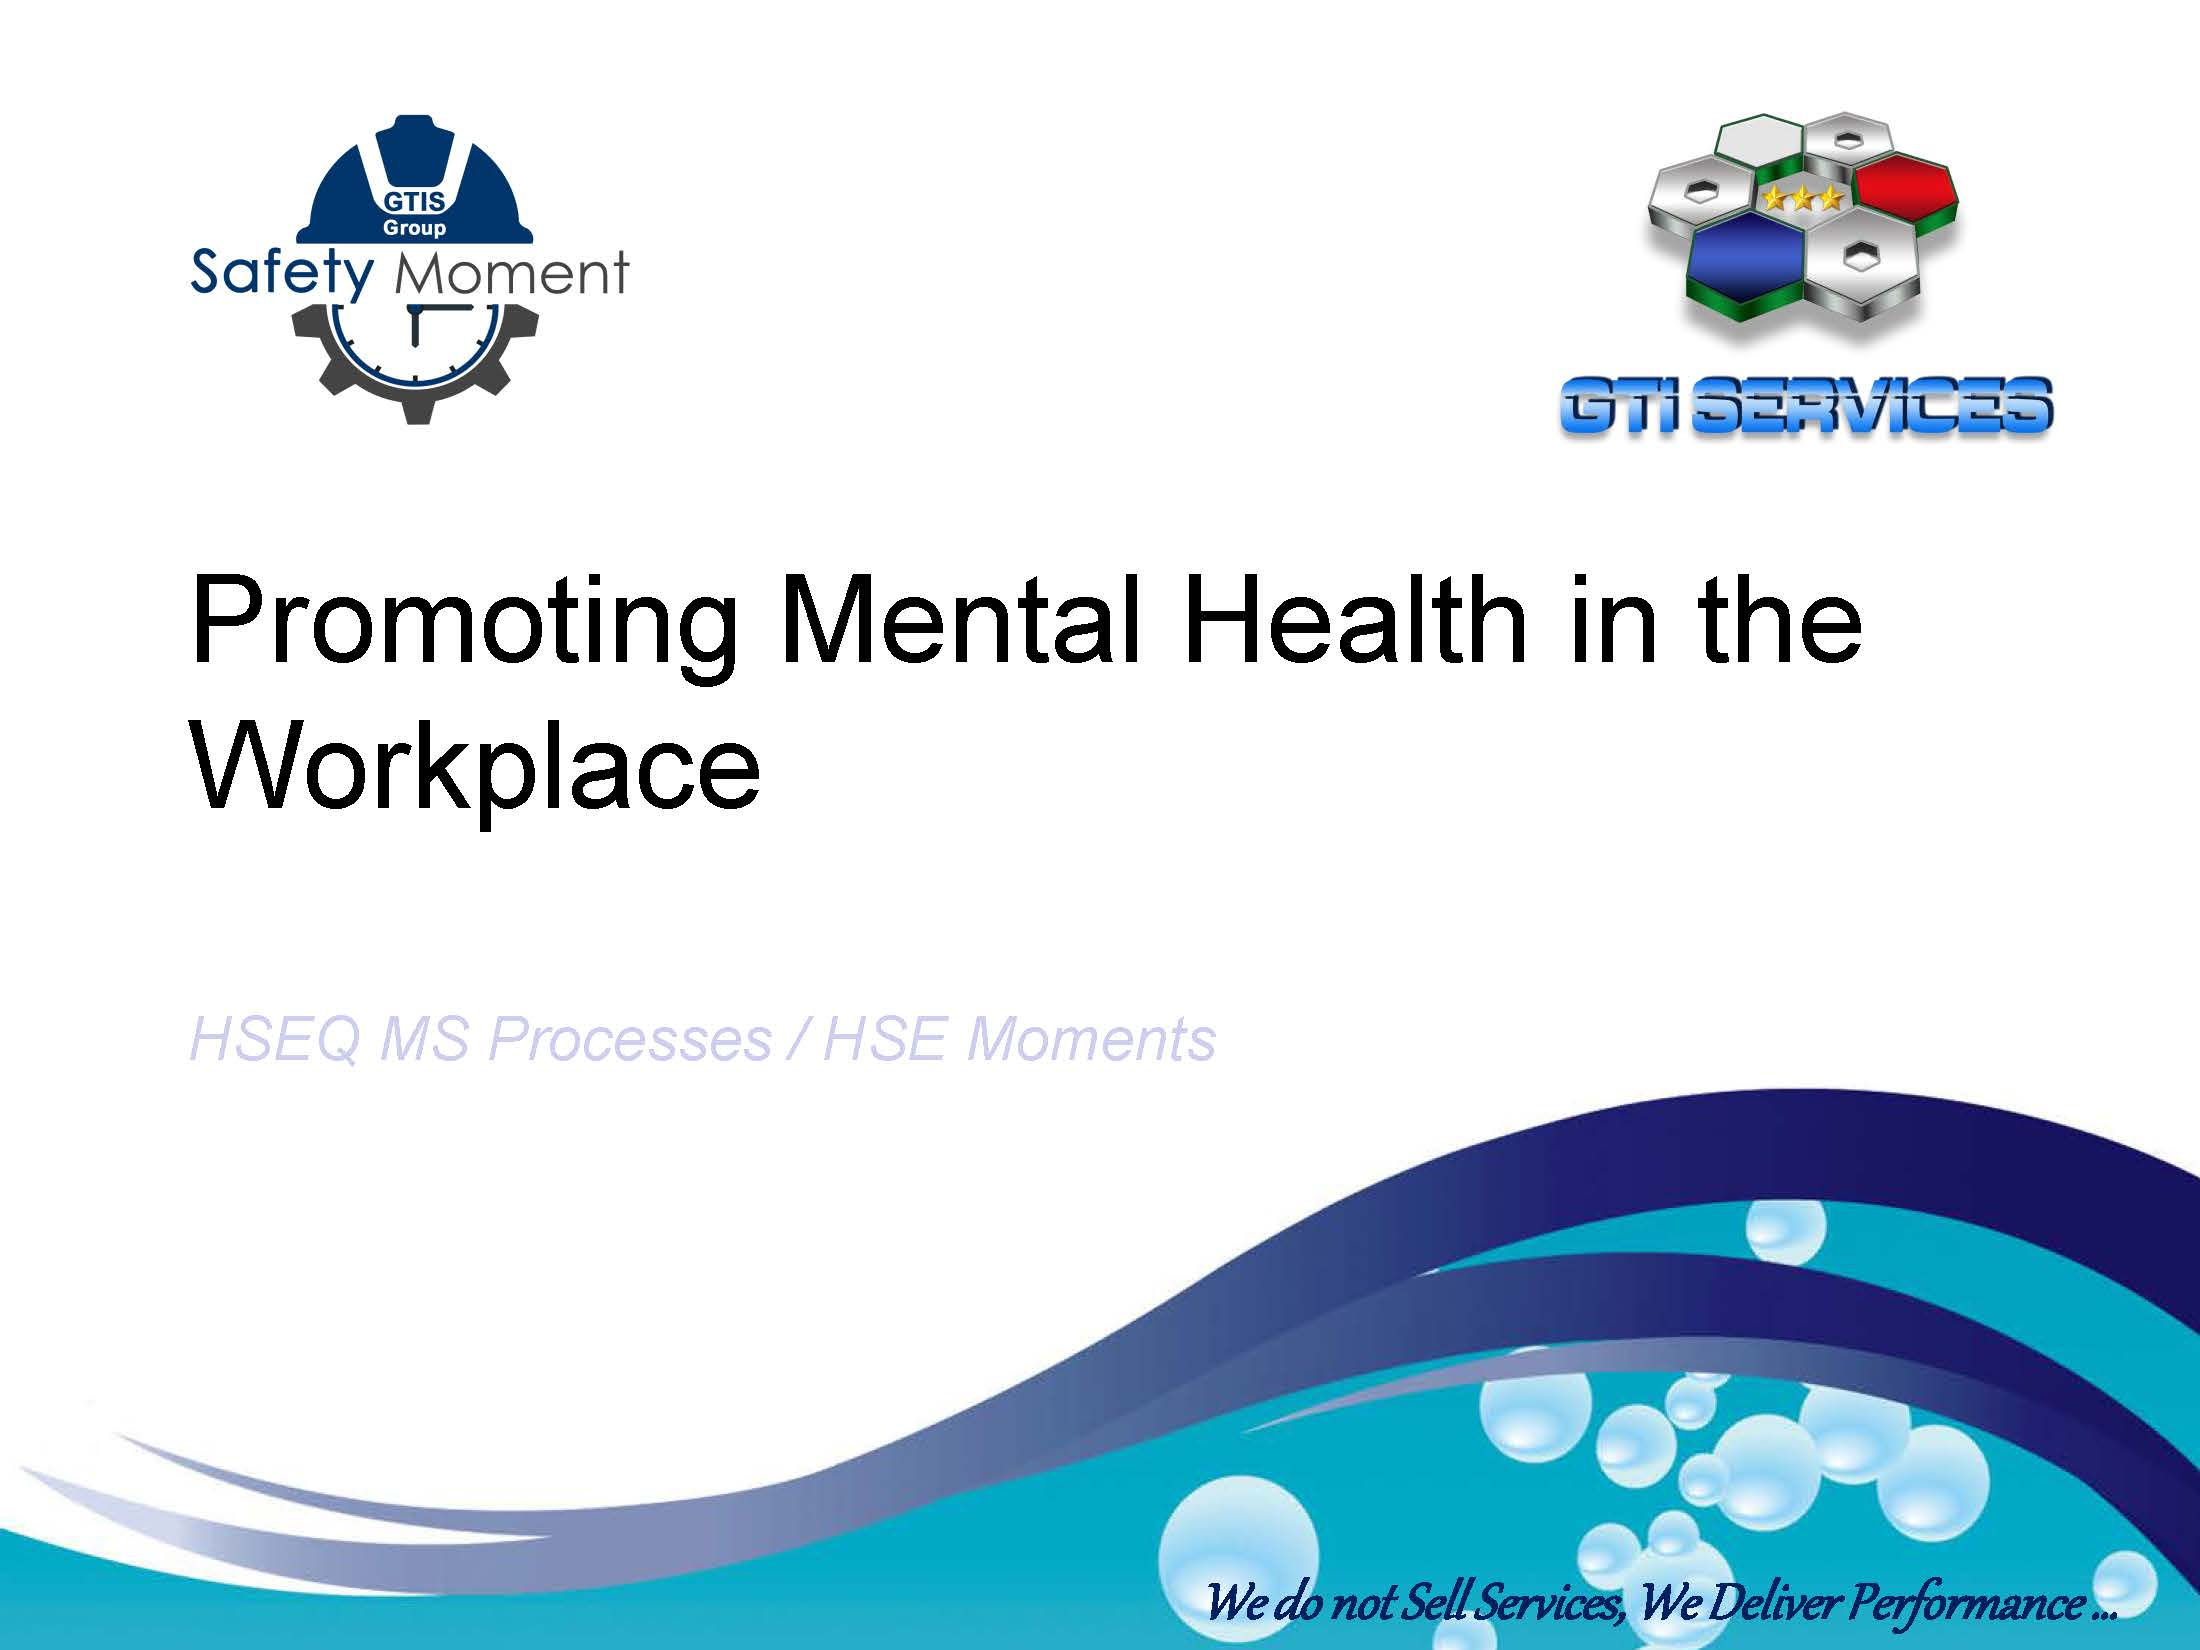 20191205 - Safety Moment - Promotion of Mental Health in the Workplace_Page_01